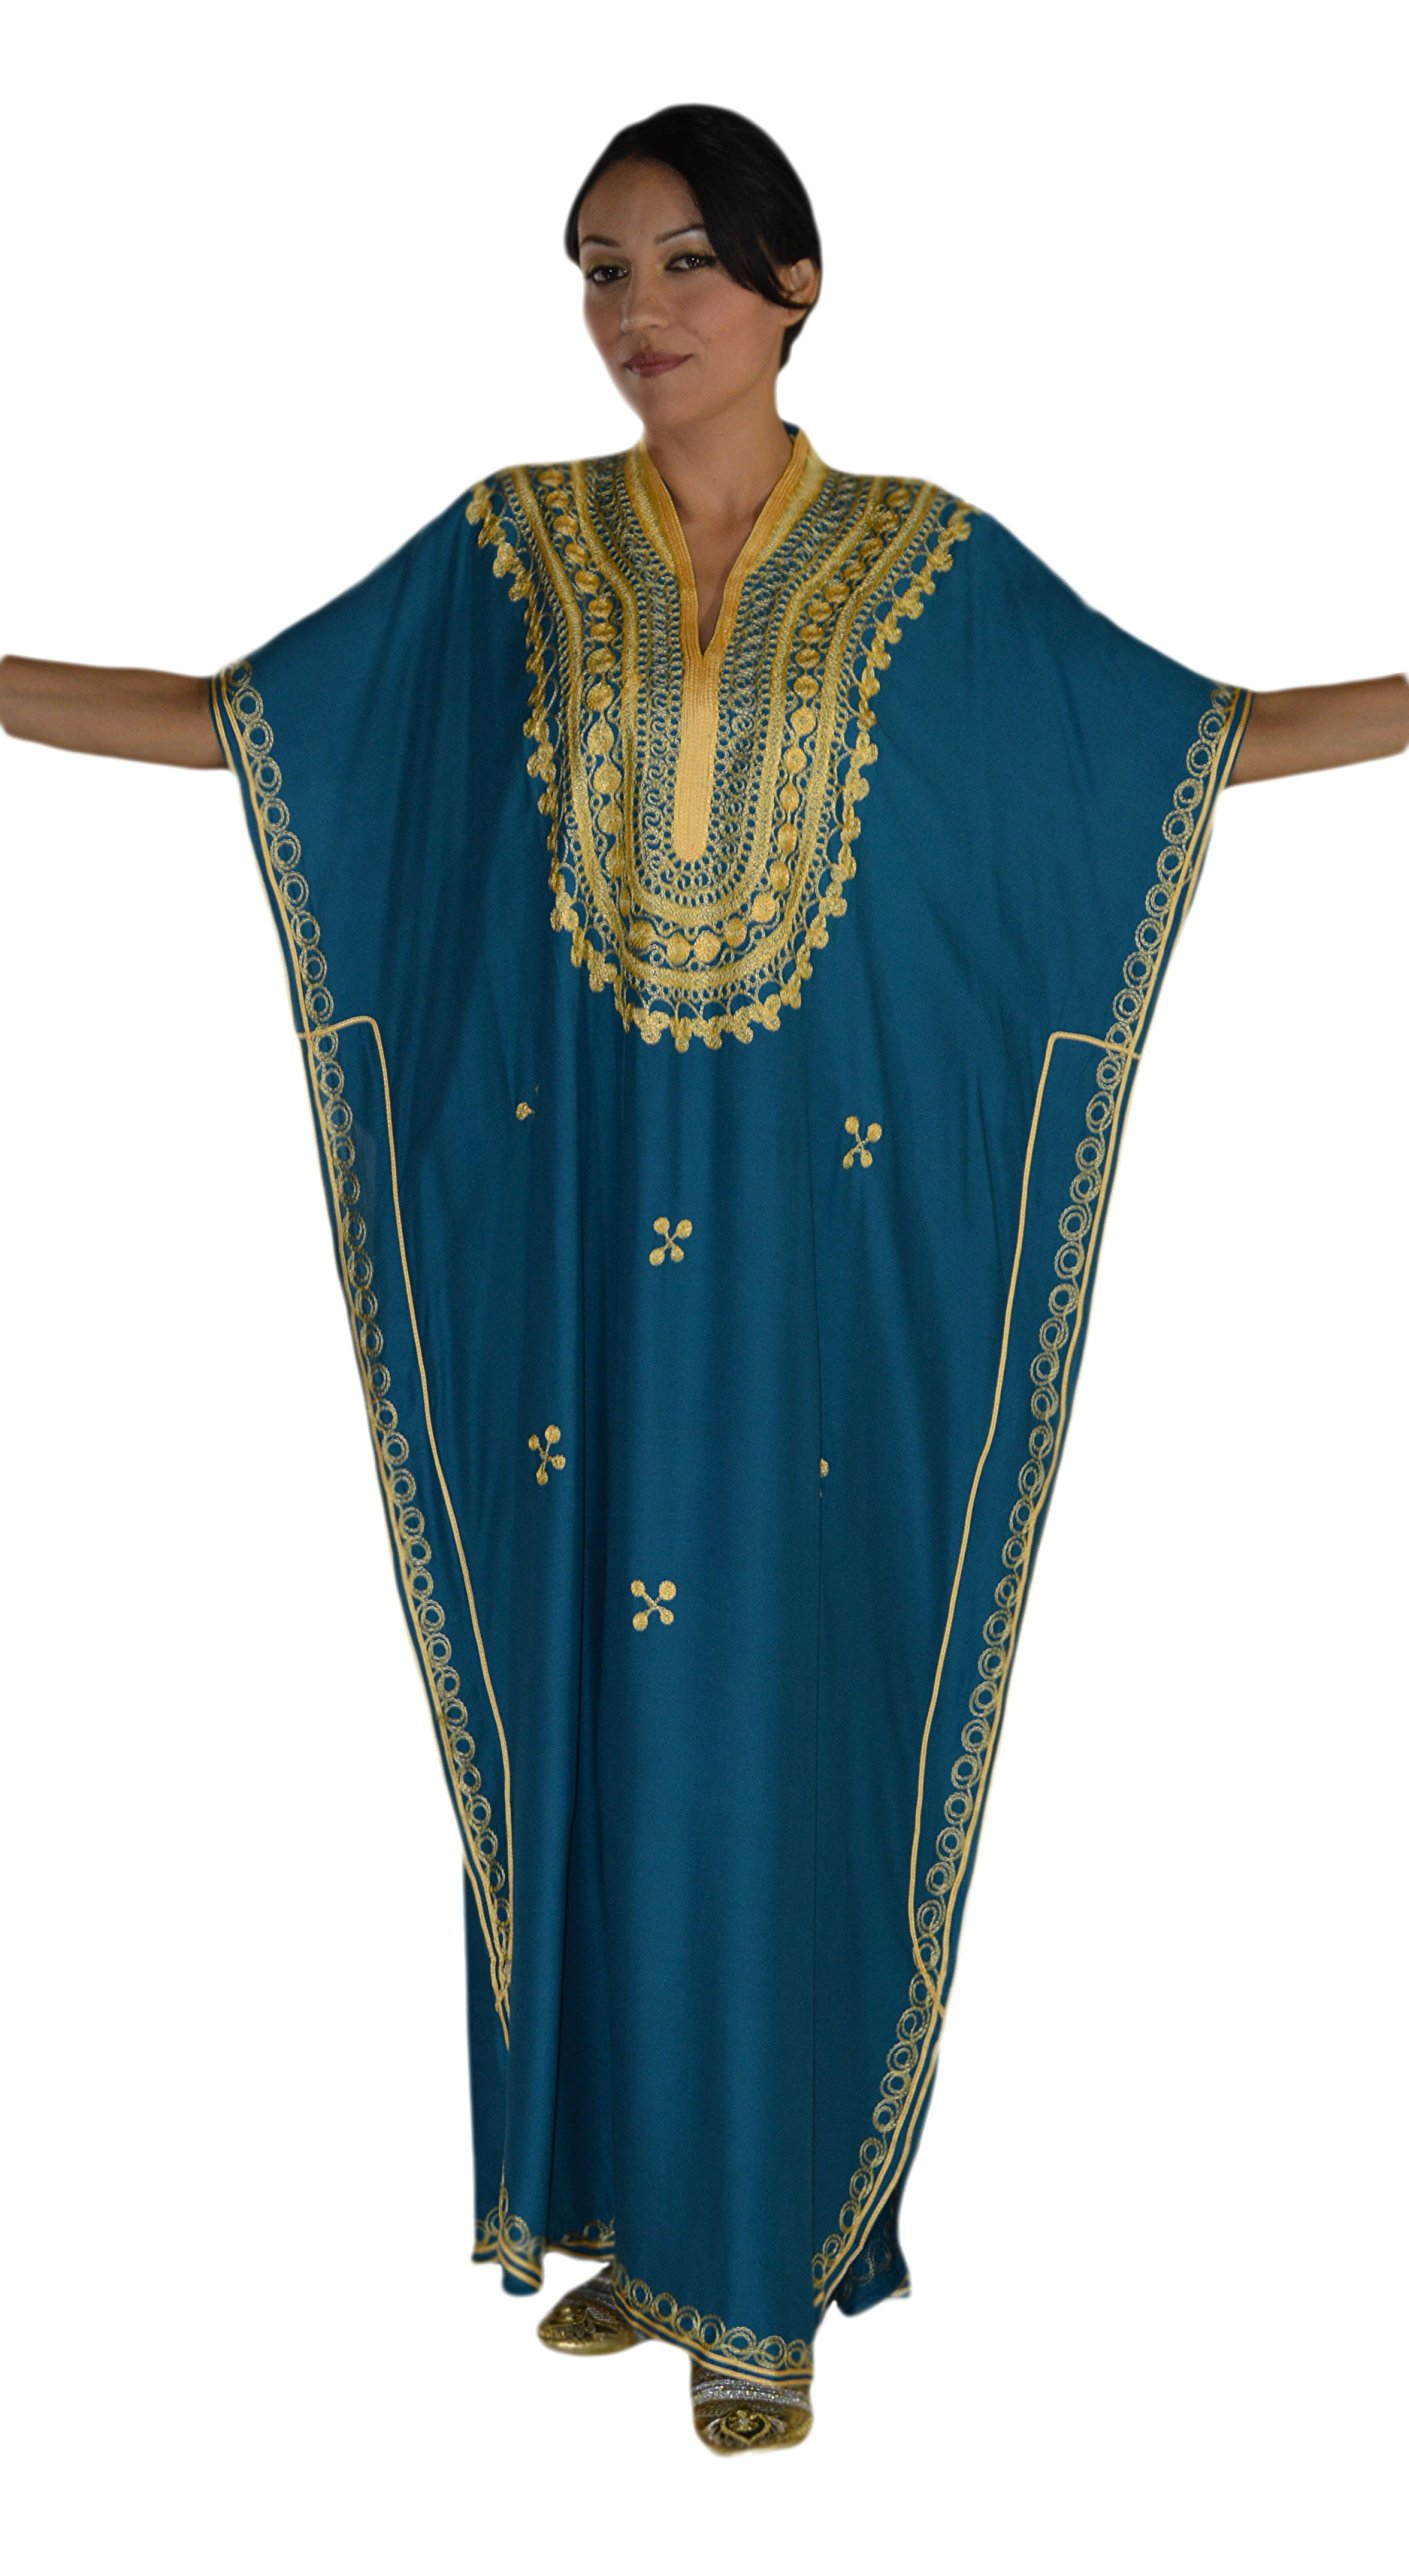 Moroccan Caftan Hand Made Top Quality Breathable Cotton with Gold Hand Embroidery Long Lenght Teal Blue